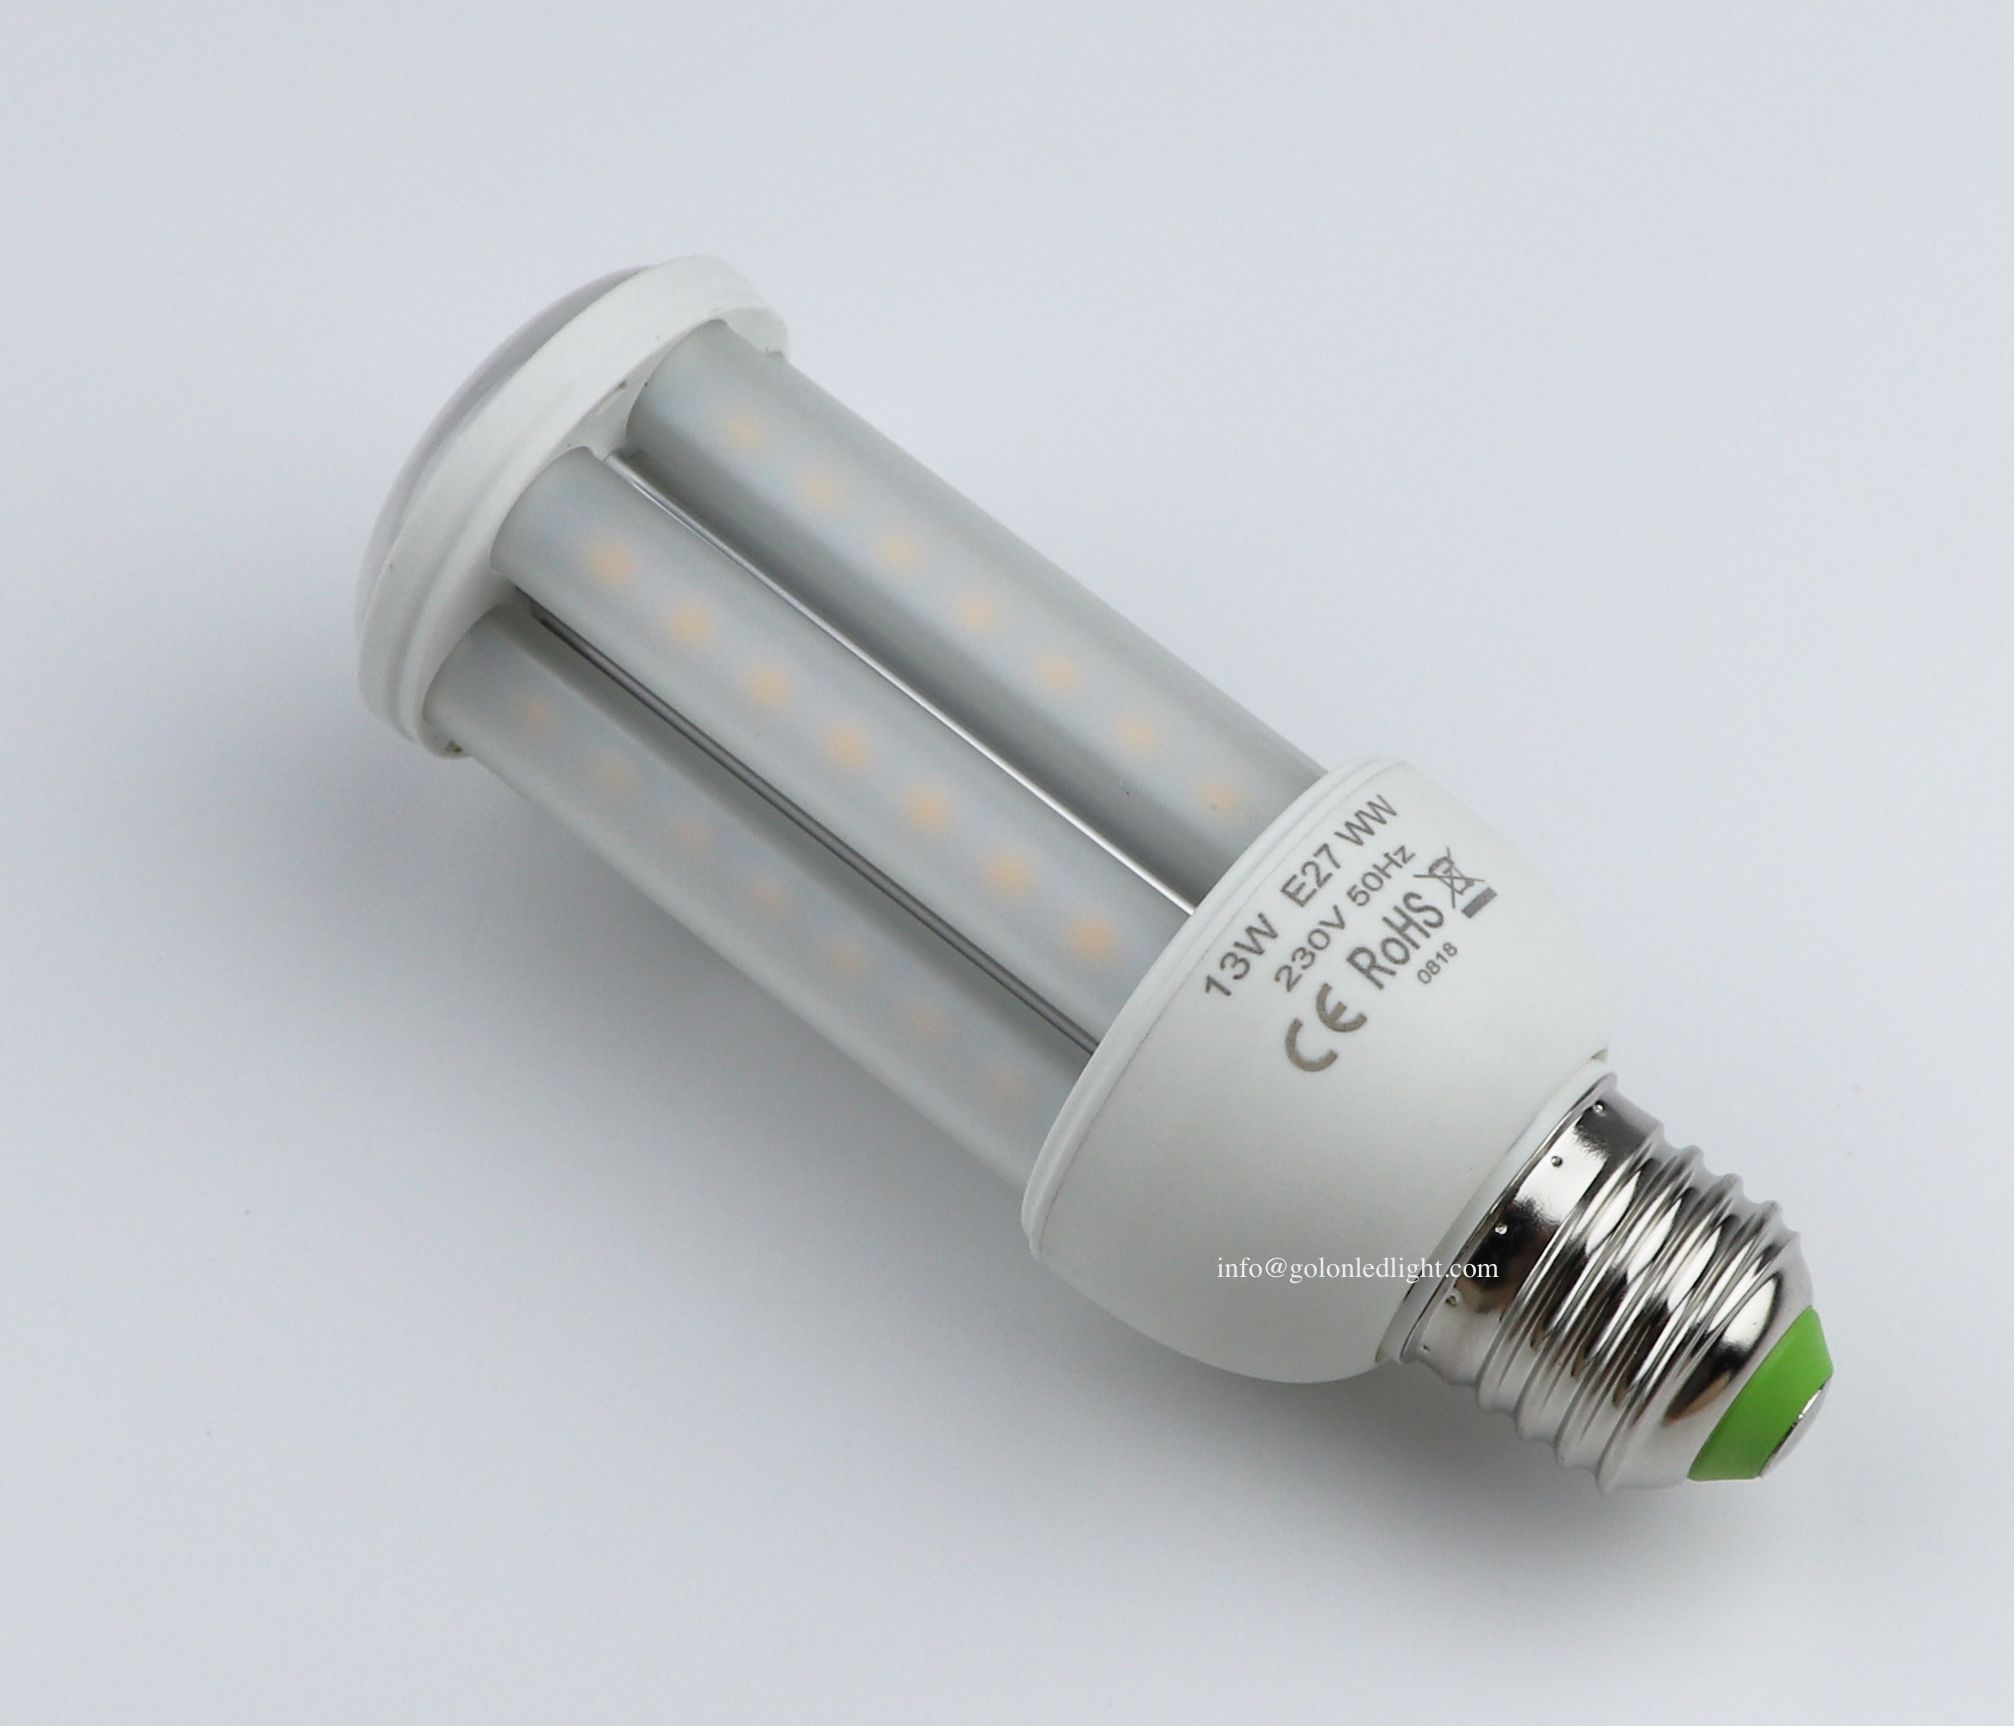 Led Bulb 3w 30w Competitive Price 3 Years Warranty High Quality G24d G24q G23 Gx23 E27 B22 Base Options 100 277vac Dimmable Inquir In 2020 Led Bulb Led Bulb